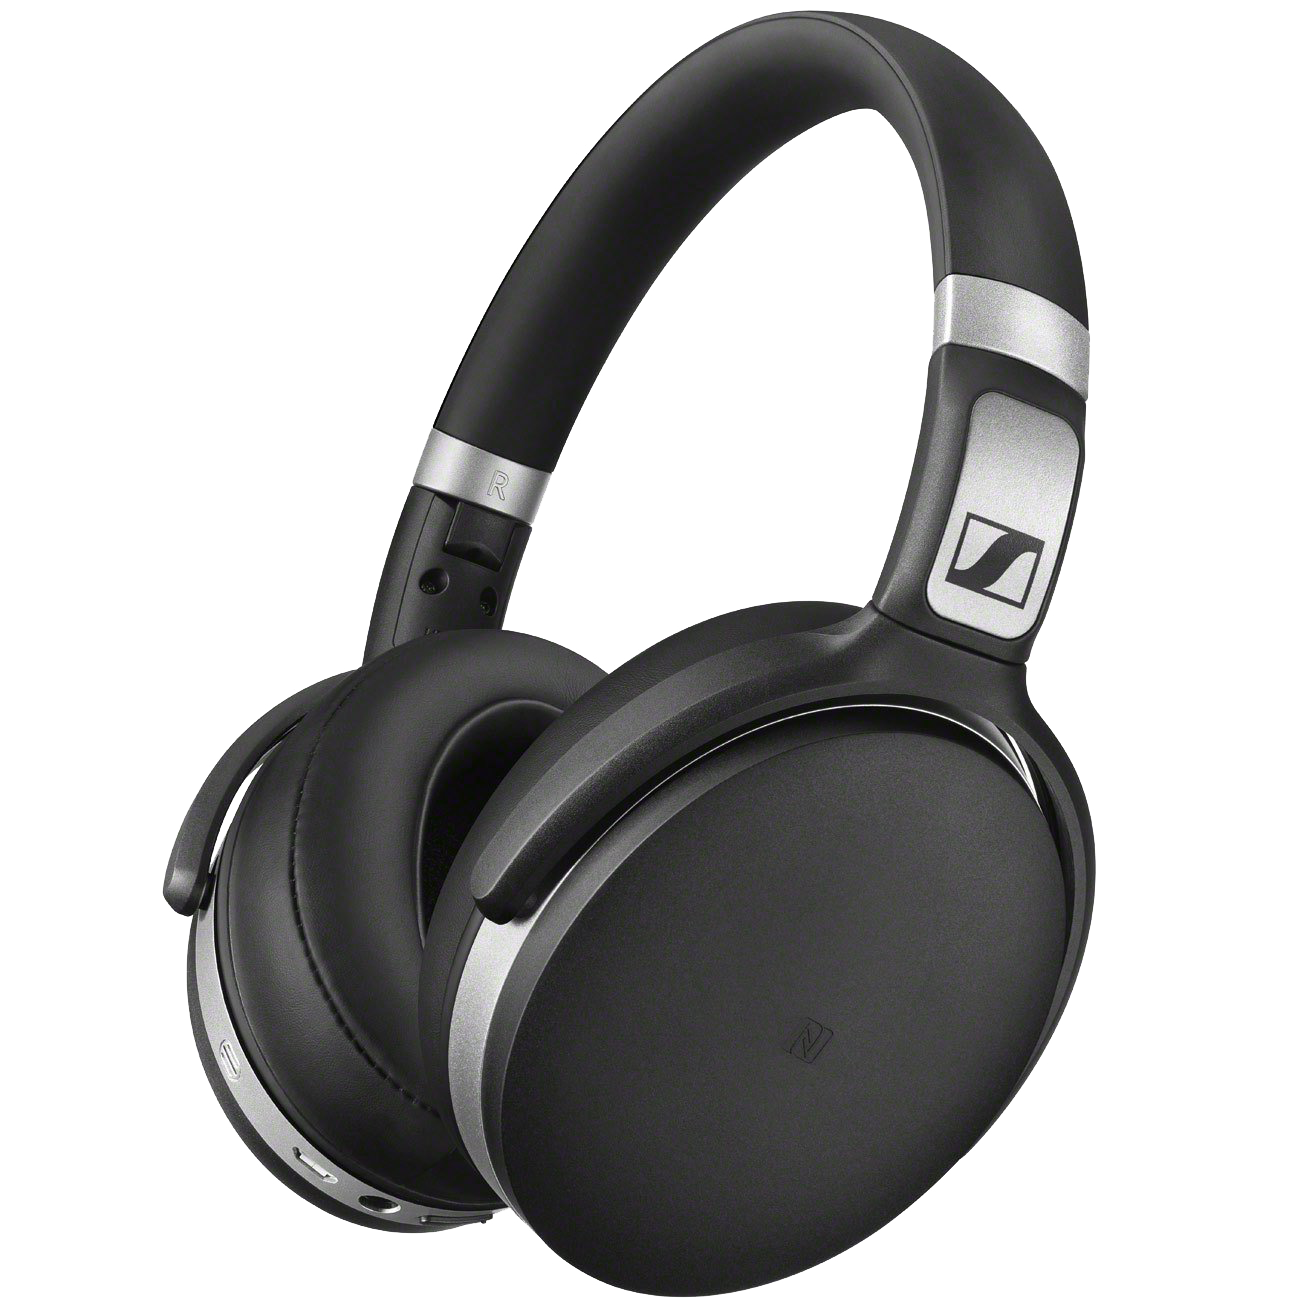 Sennheiser HD4.50 BTNC Wireless Noise Cancelling Headphones